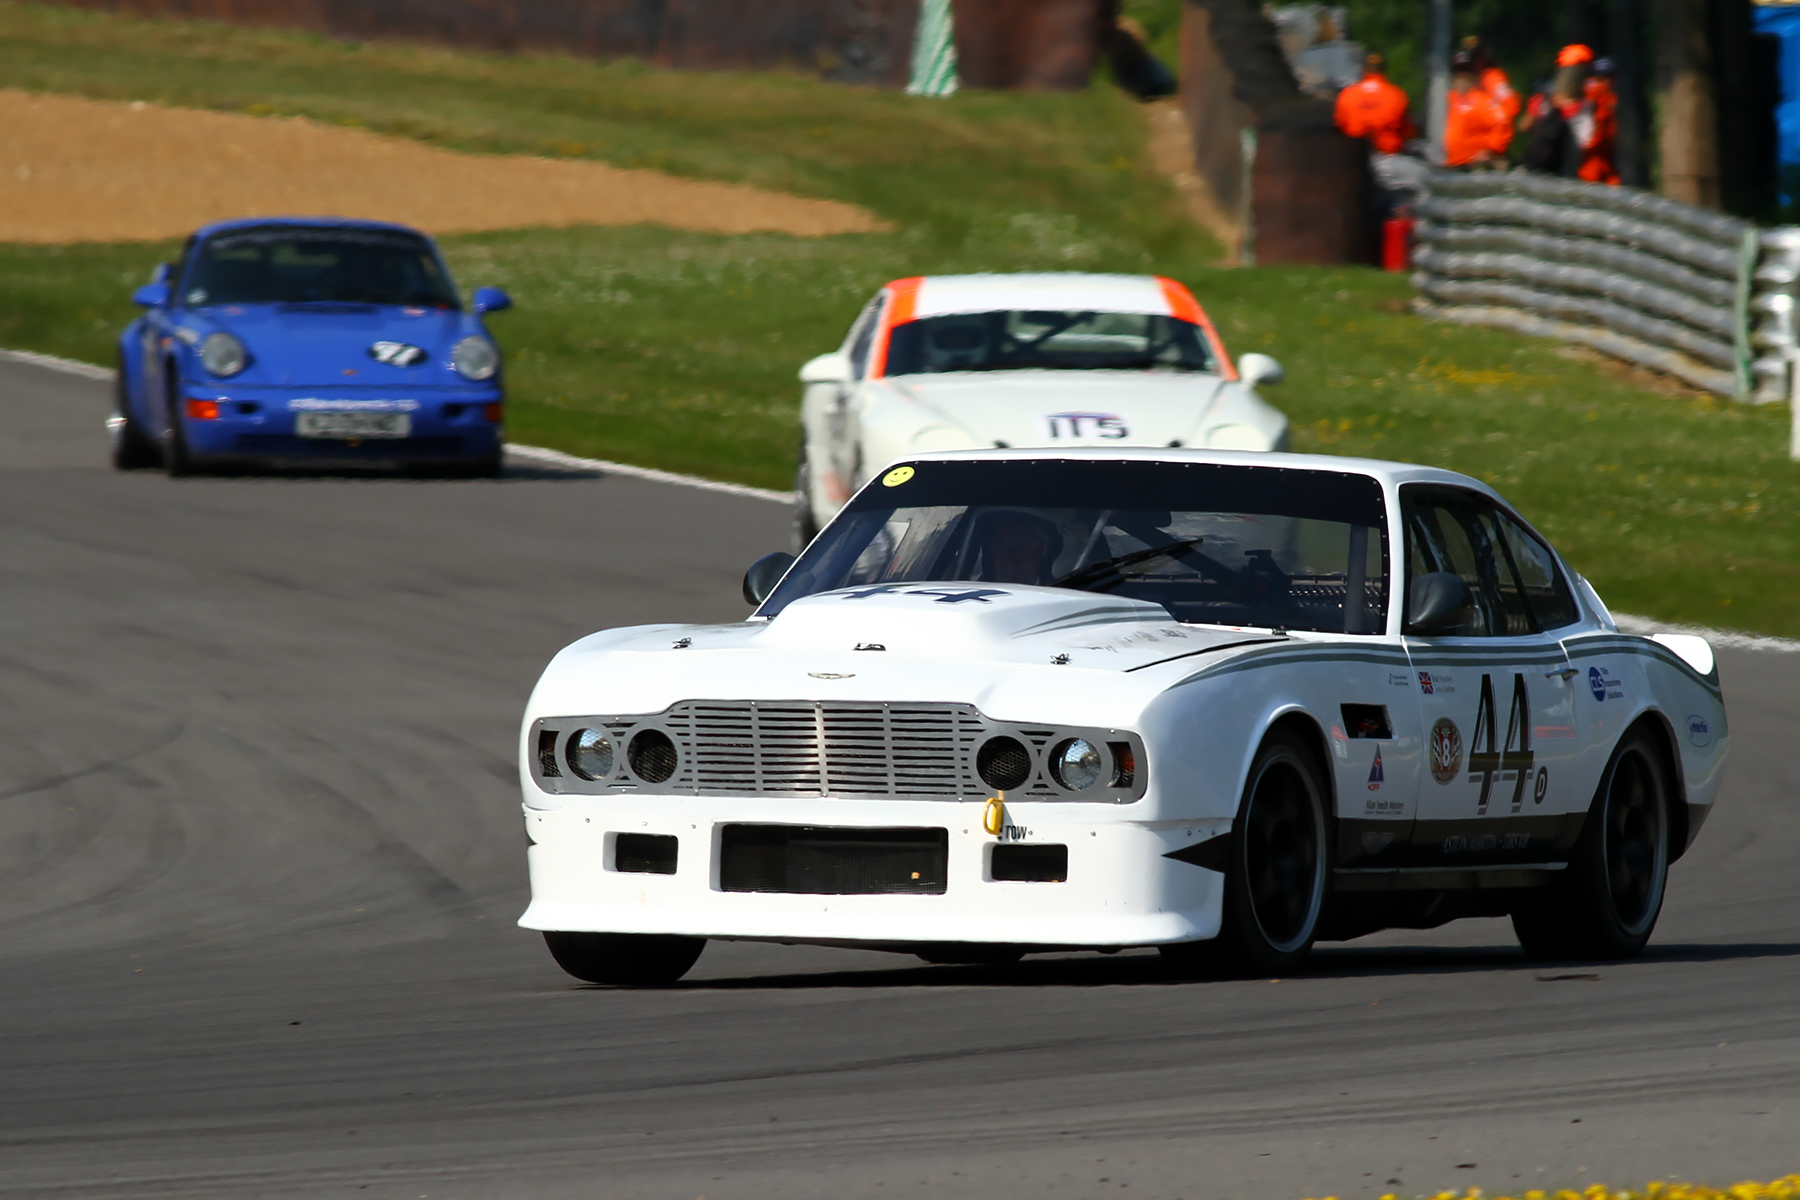 ASTON MARTINS TAKE ON GP AND INDY CIRCUITS THIS WEEKEND